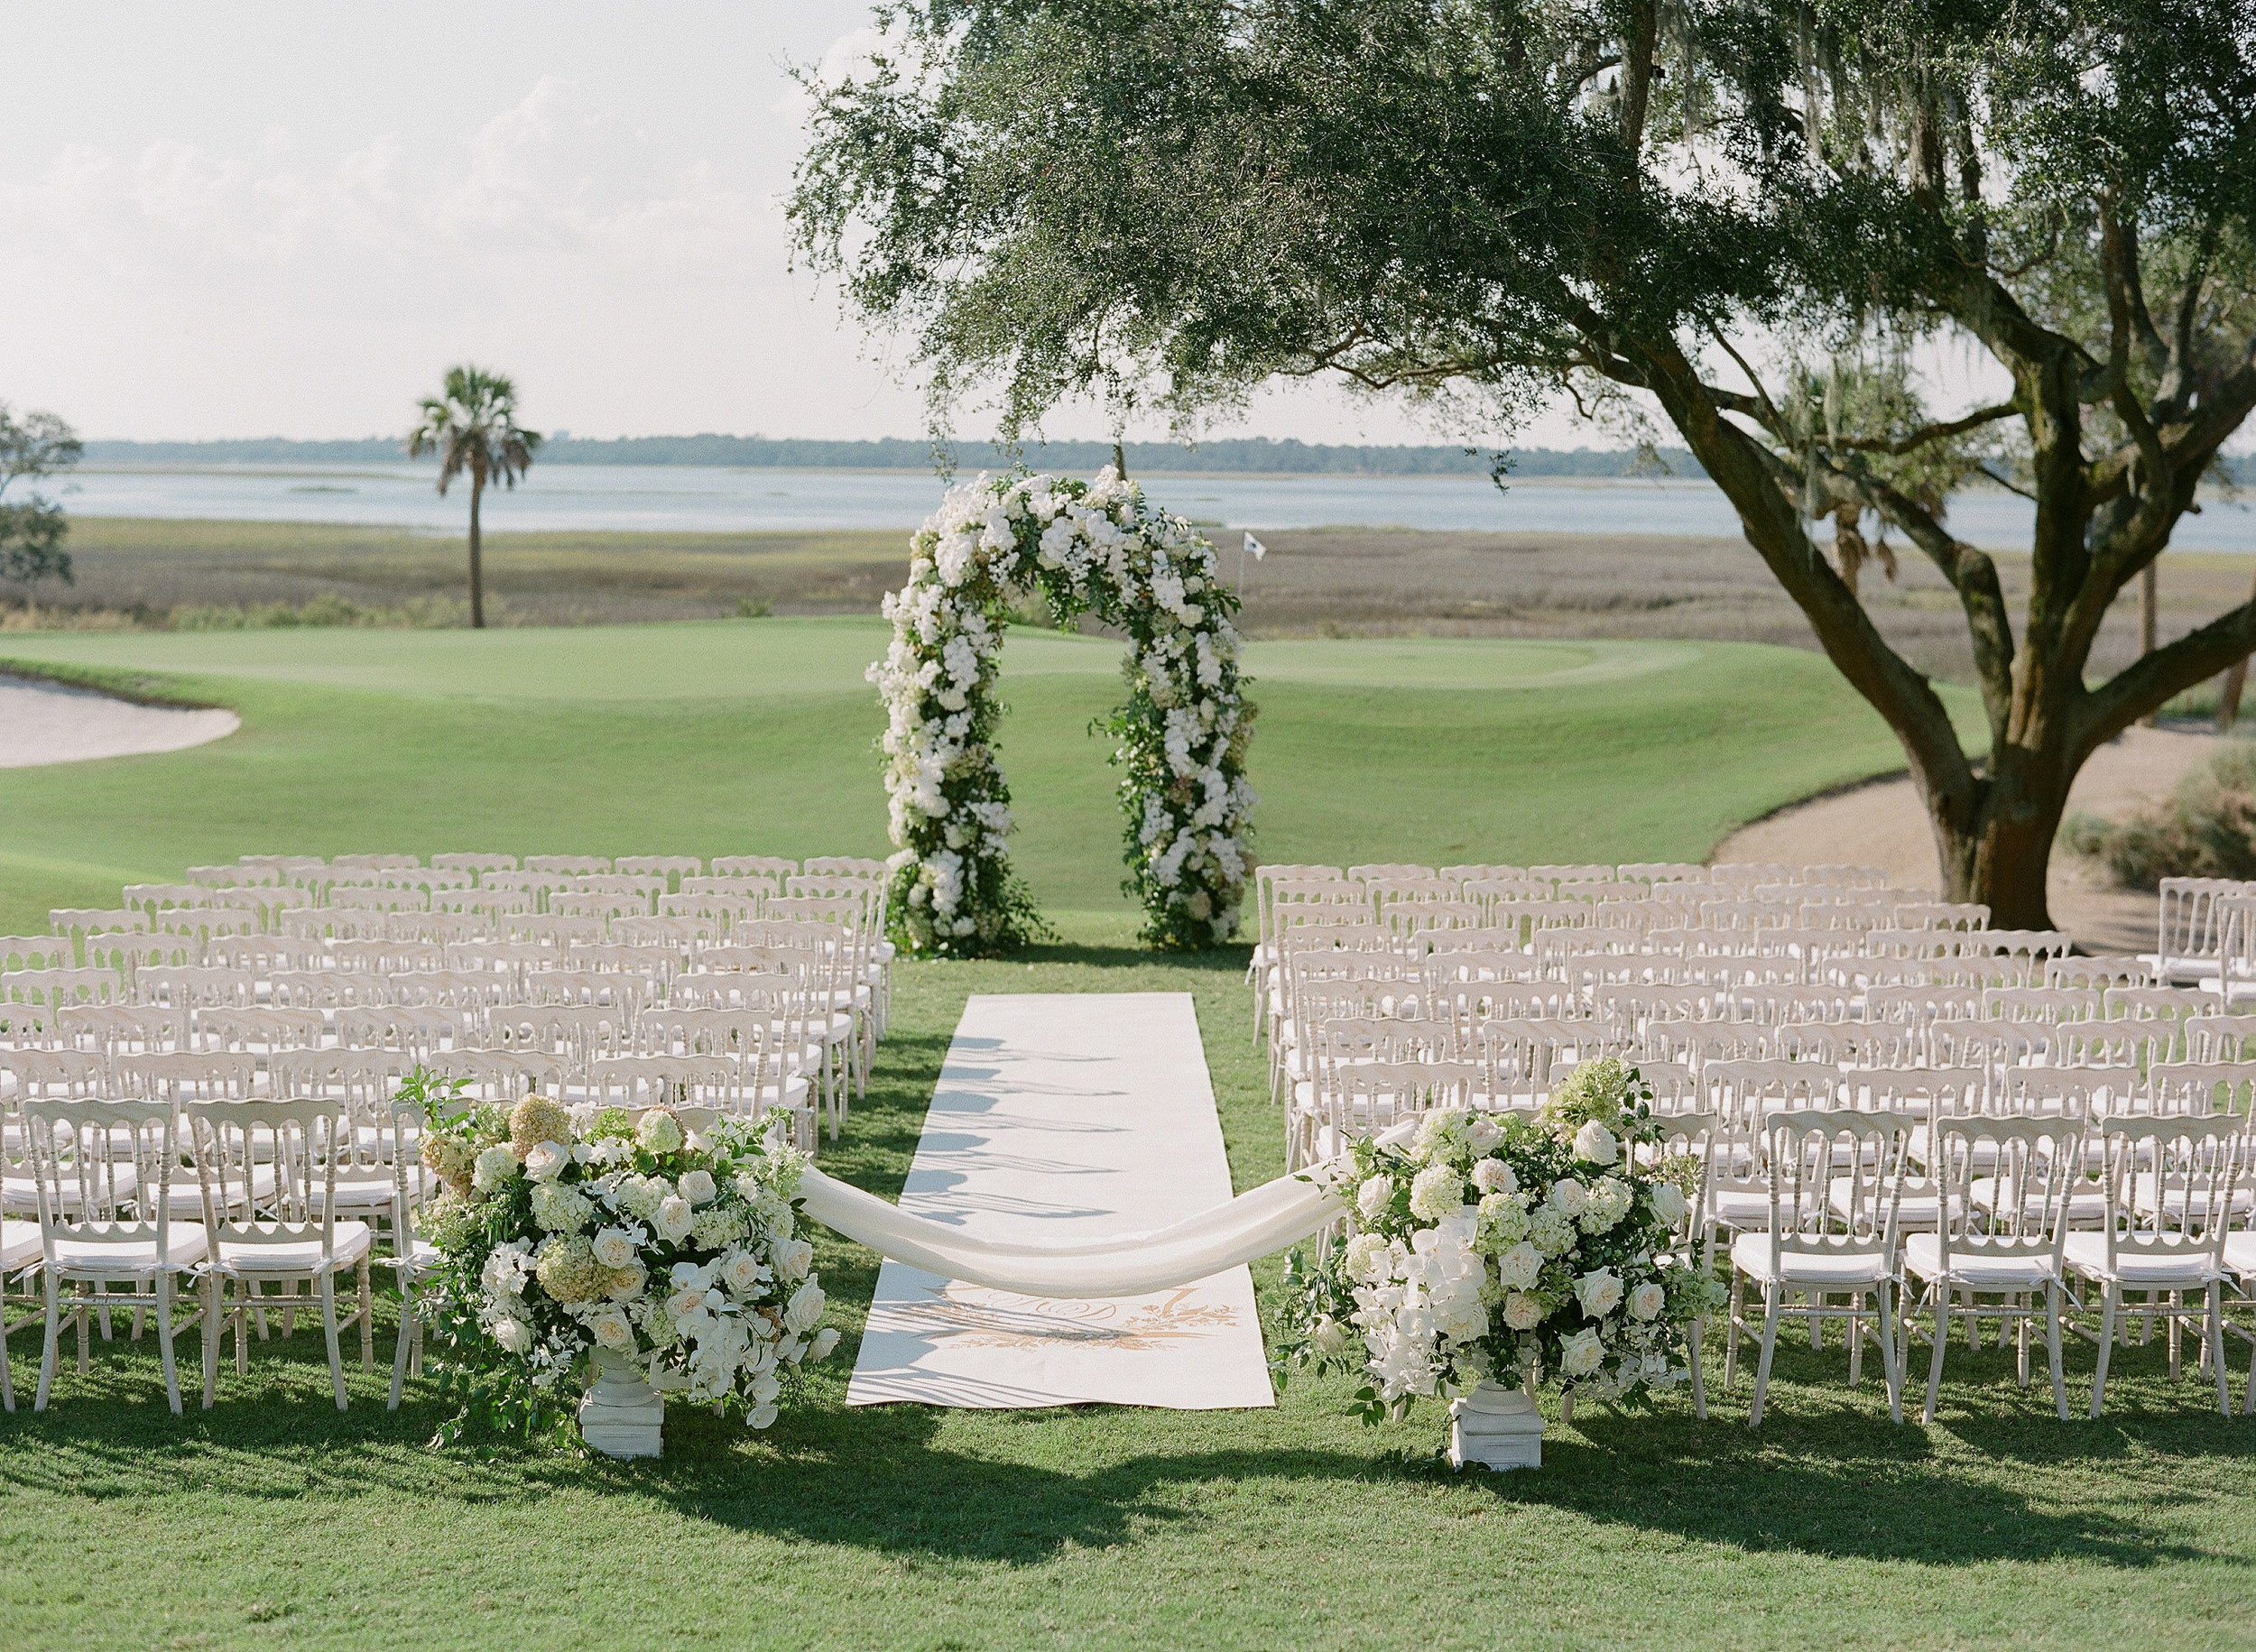 Expect the best in service and detail - luxury destination wedding planner